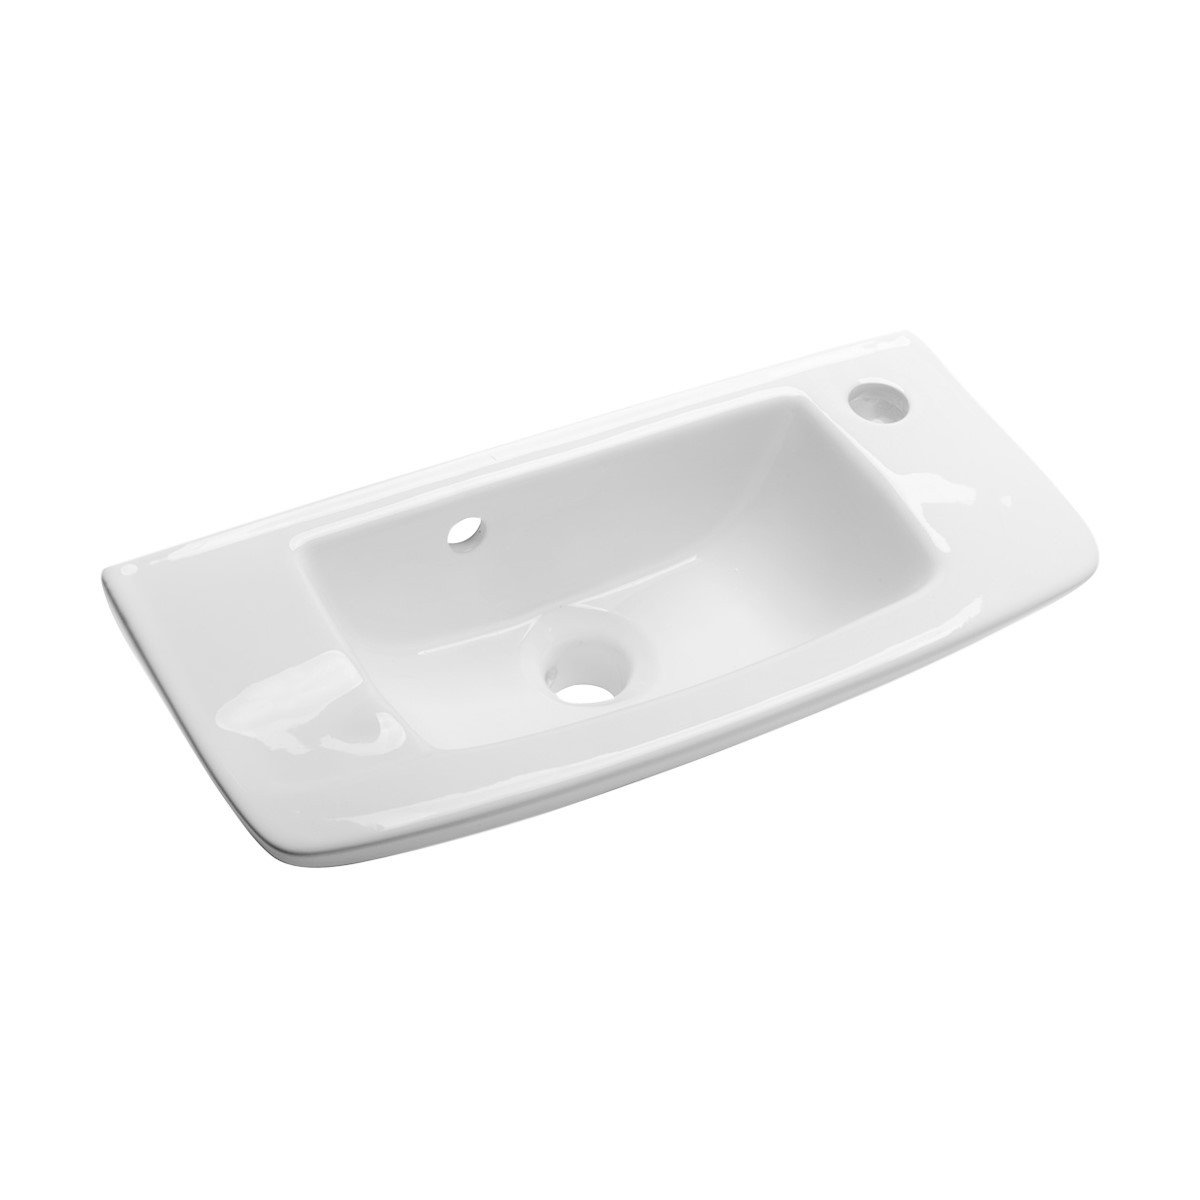 20 Small Wall Mount Sink White With Overflow Rectangle Space Saving Compact Design Scratch And Stain Resistant Porcelain Ceramic Renovators Supply Manufacturing